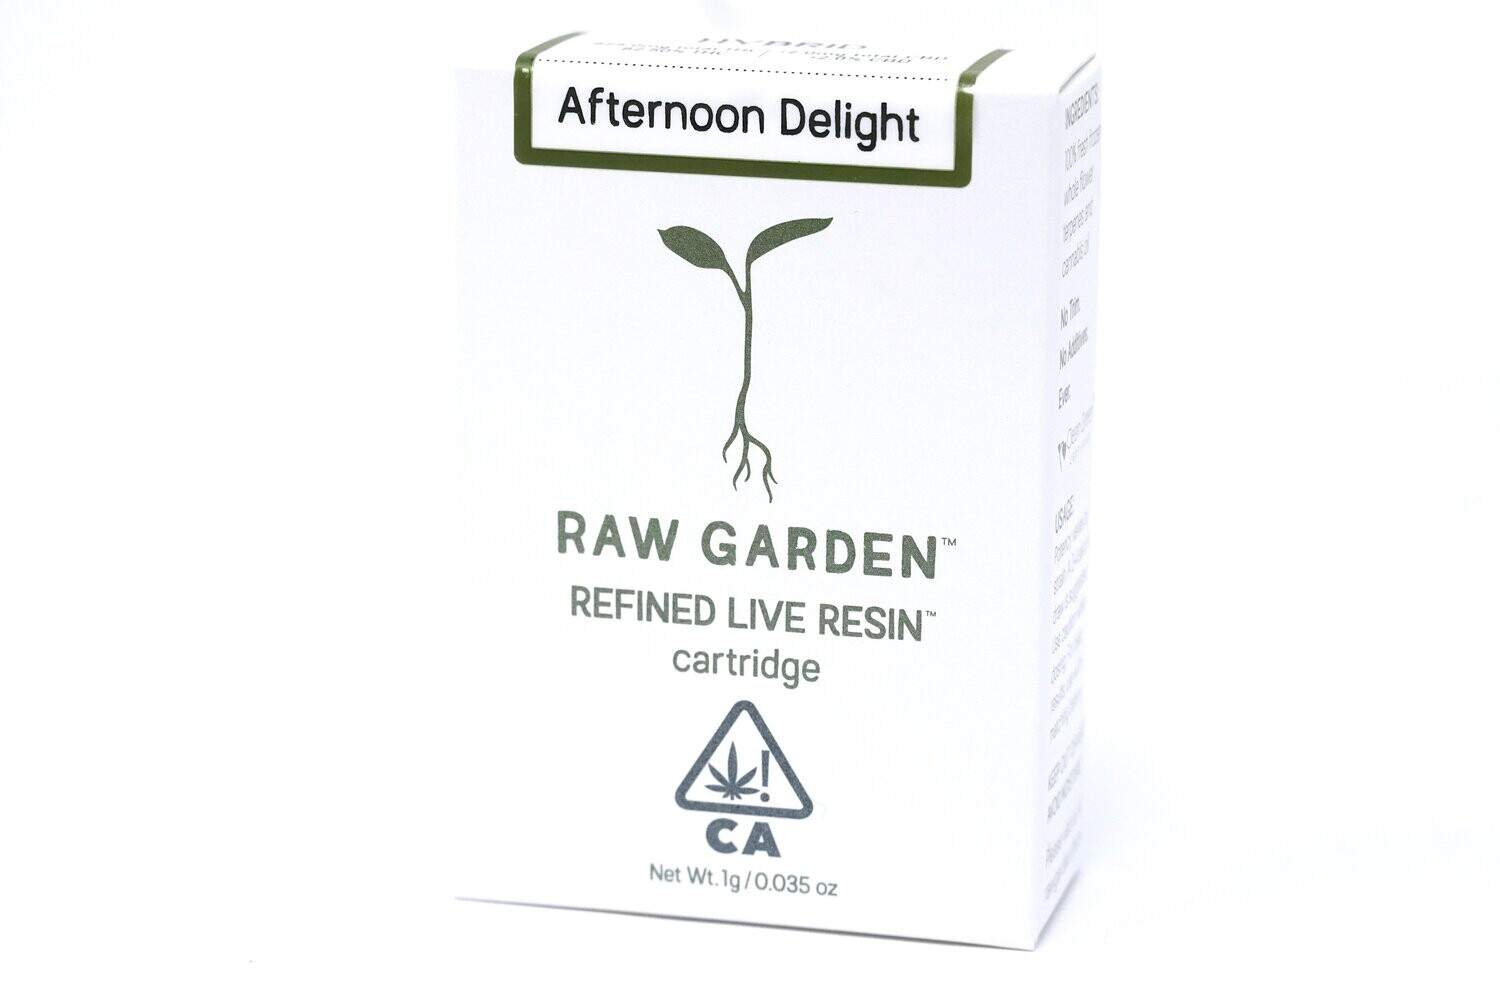 Raw Garden - Afternoon Delight 1000mg